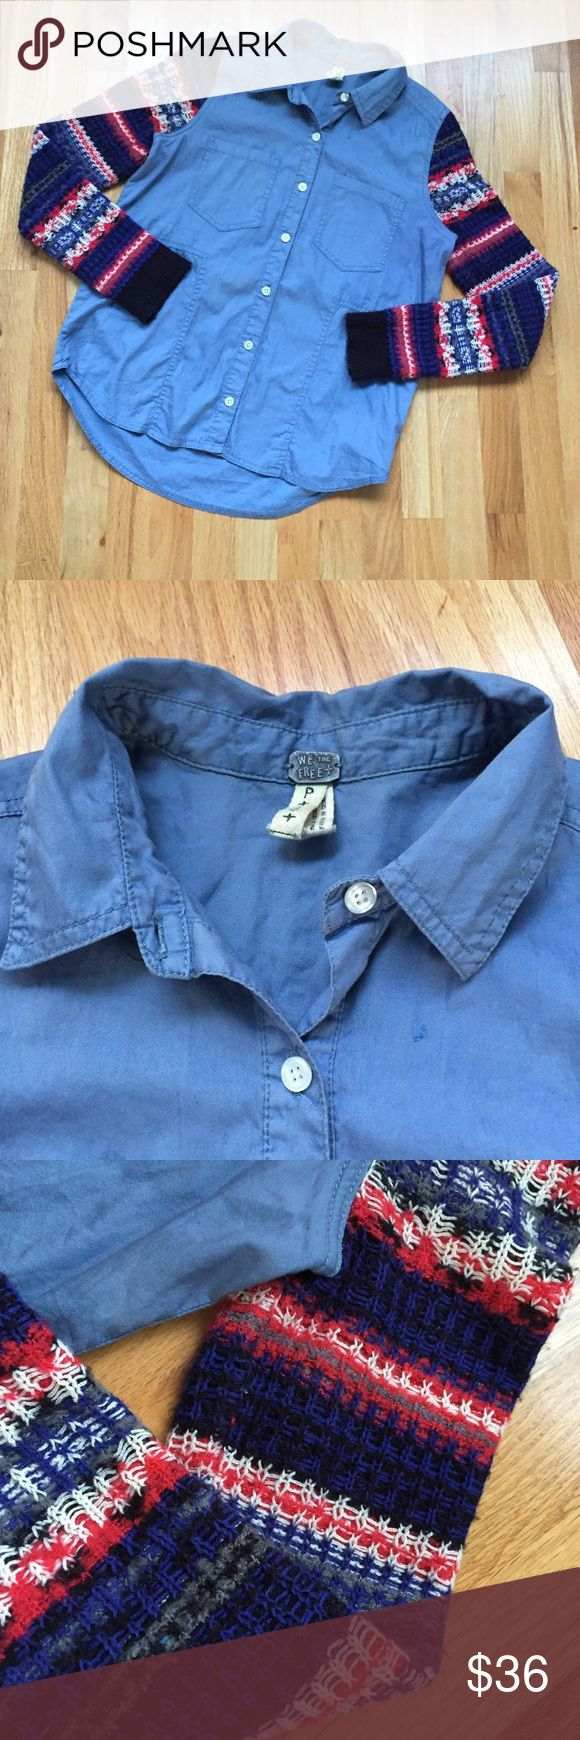 """Free People Sweater Shirt Denim Chambray boho Cozy and Fun Cortton Light denim shirt with knit sleeves.  Excellent used condition with some pill on the cuffs.  Chest 40"""" and front length 25"""" Free People Tops Button Down Shirts"""